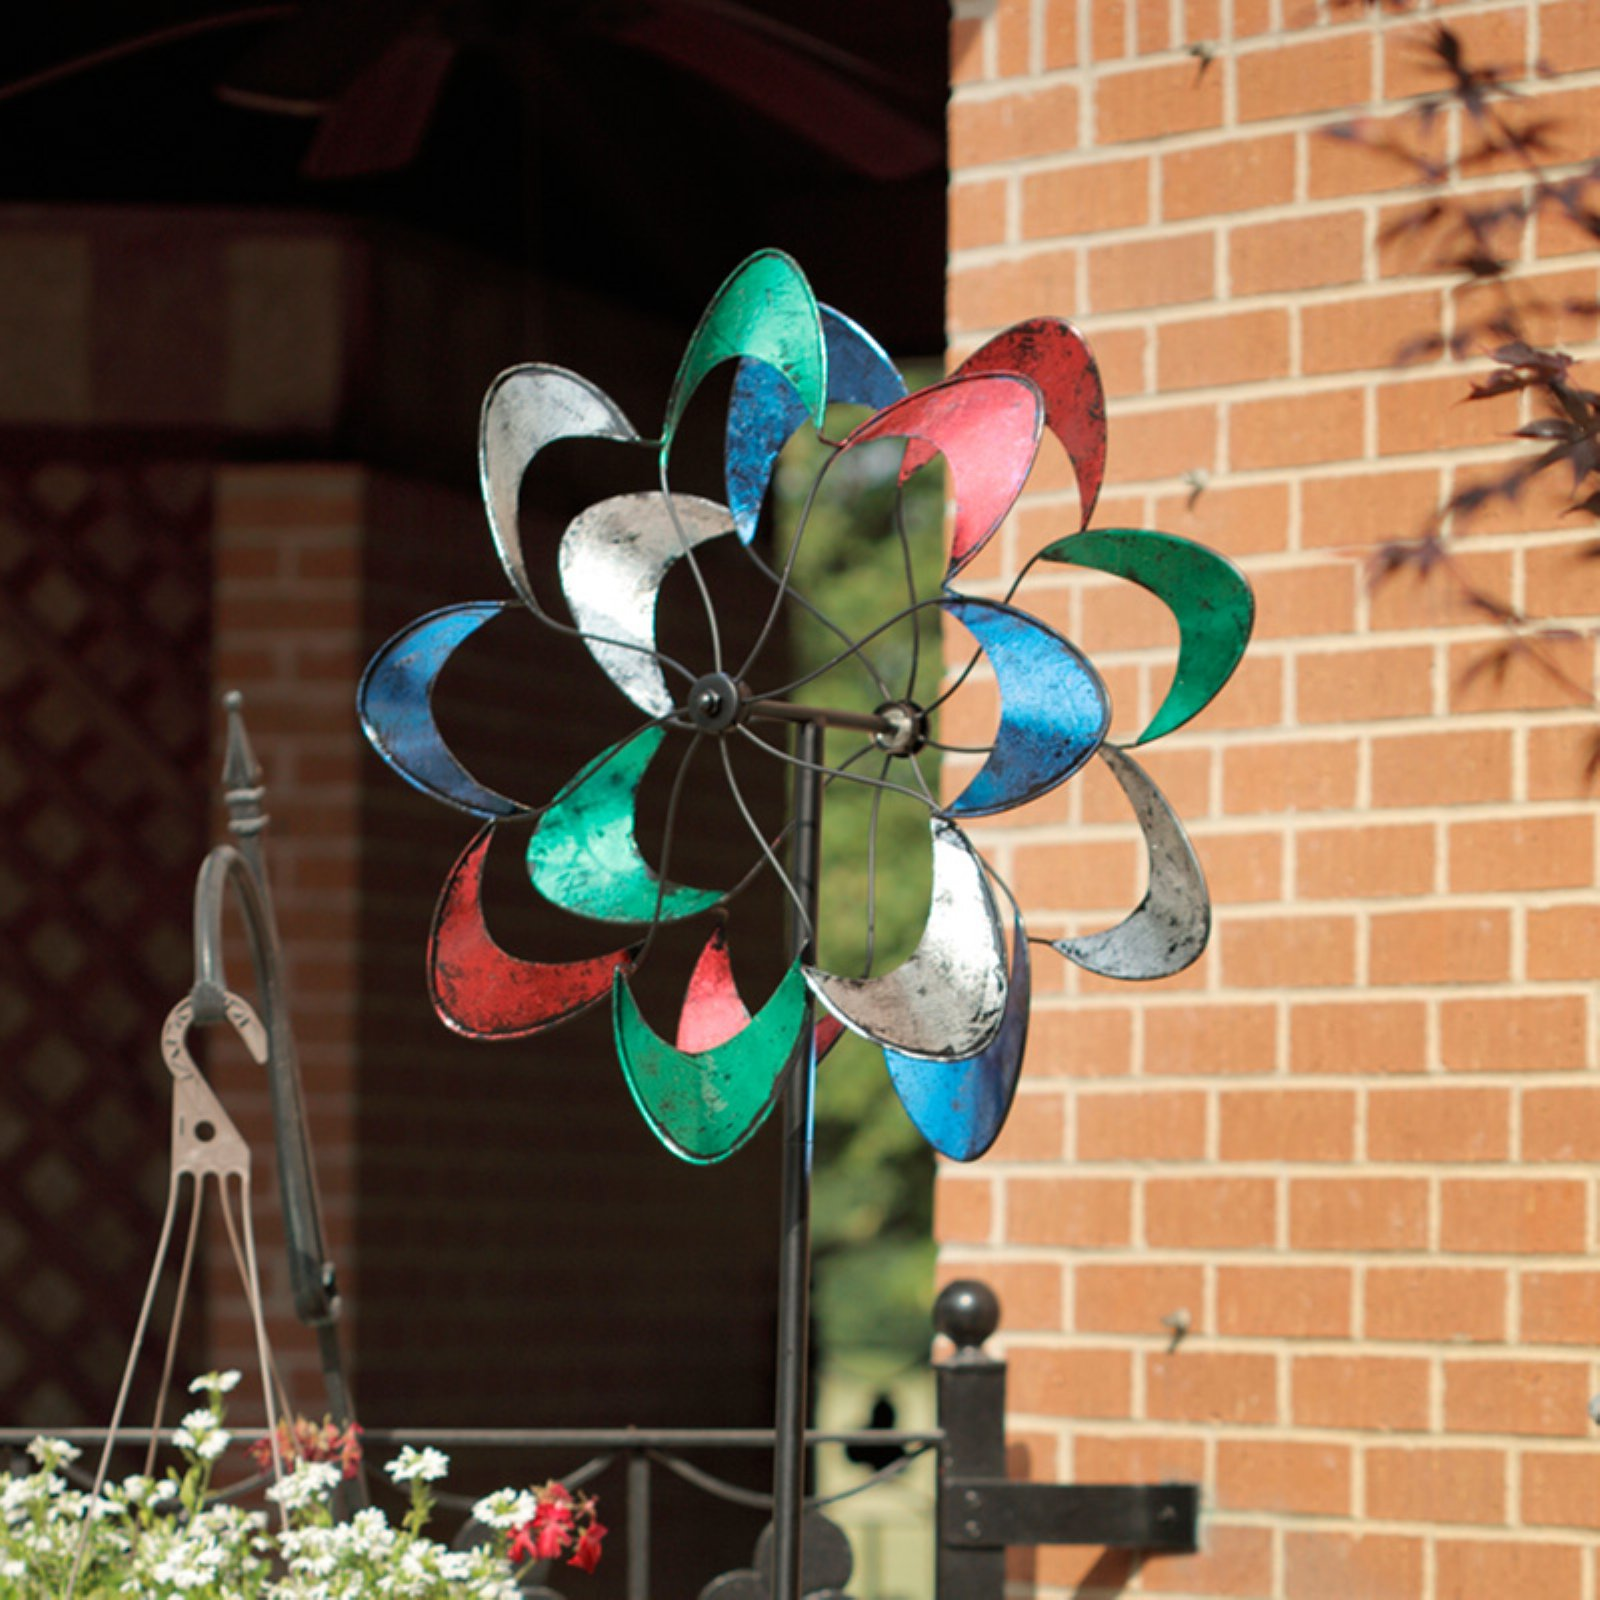 American Furniture Classics Colorful Petals Wind Spinner, Yard Ornament by American Furniture Classics